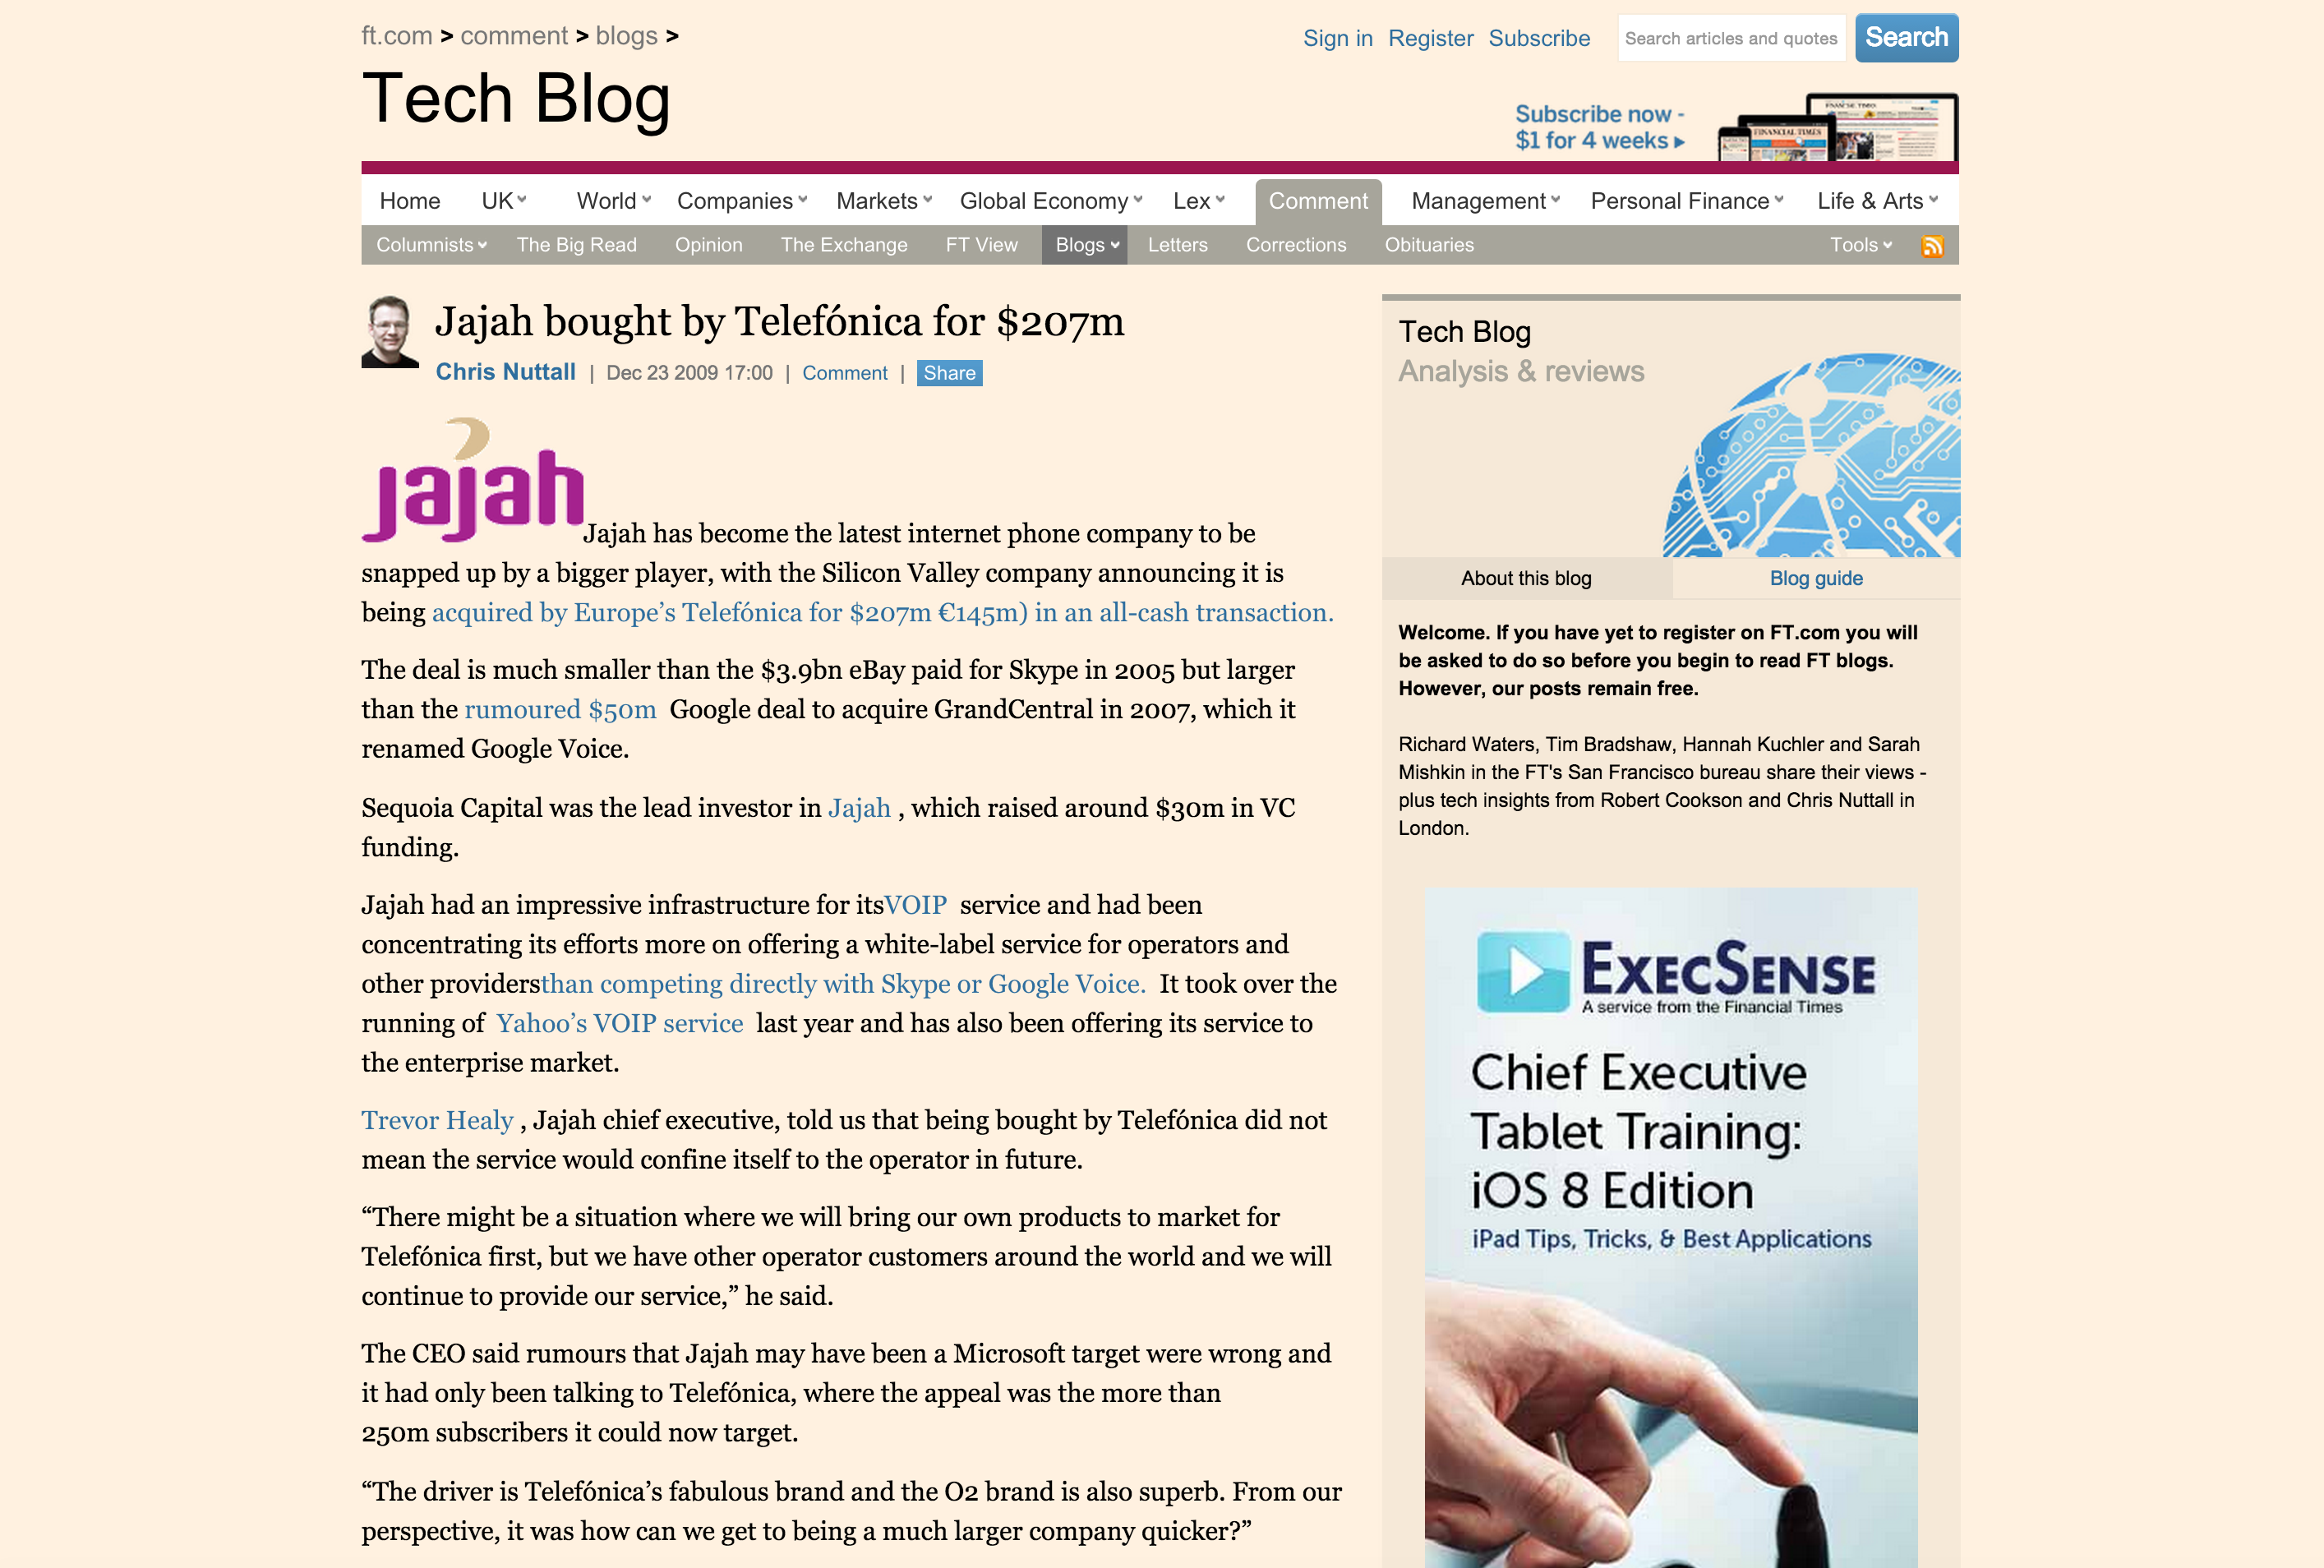 Jajah bought by Telefónica for $207m